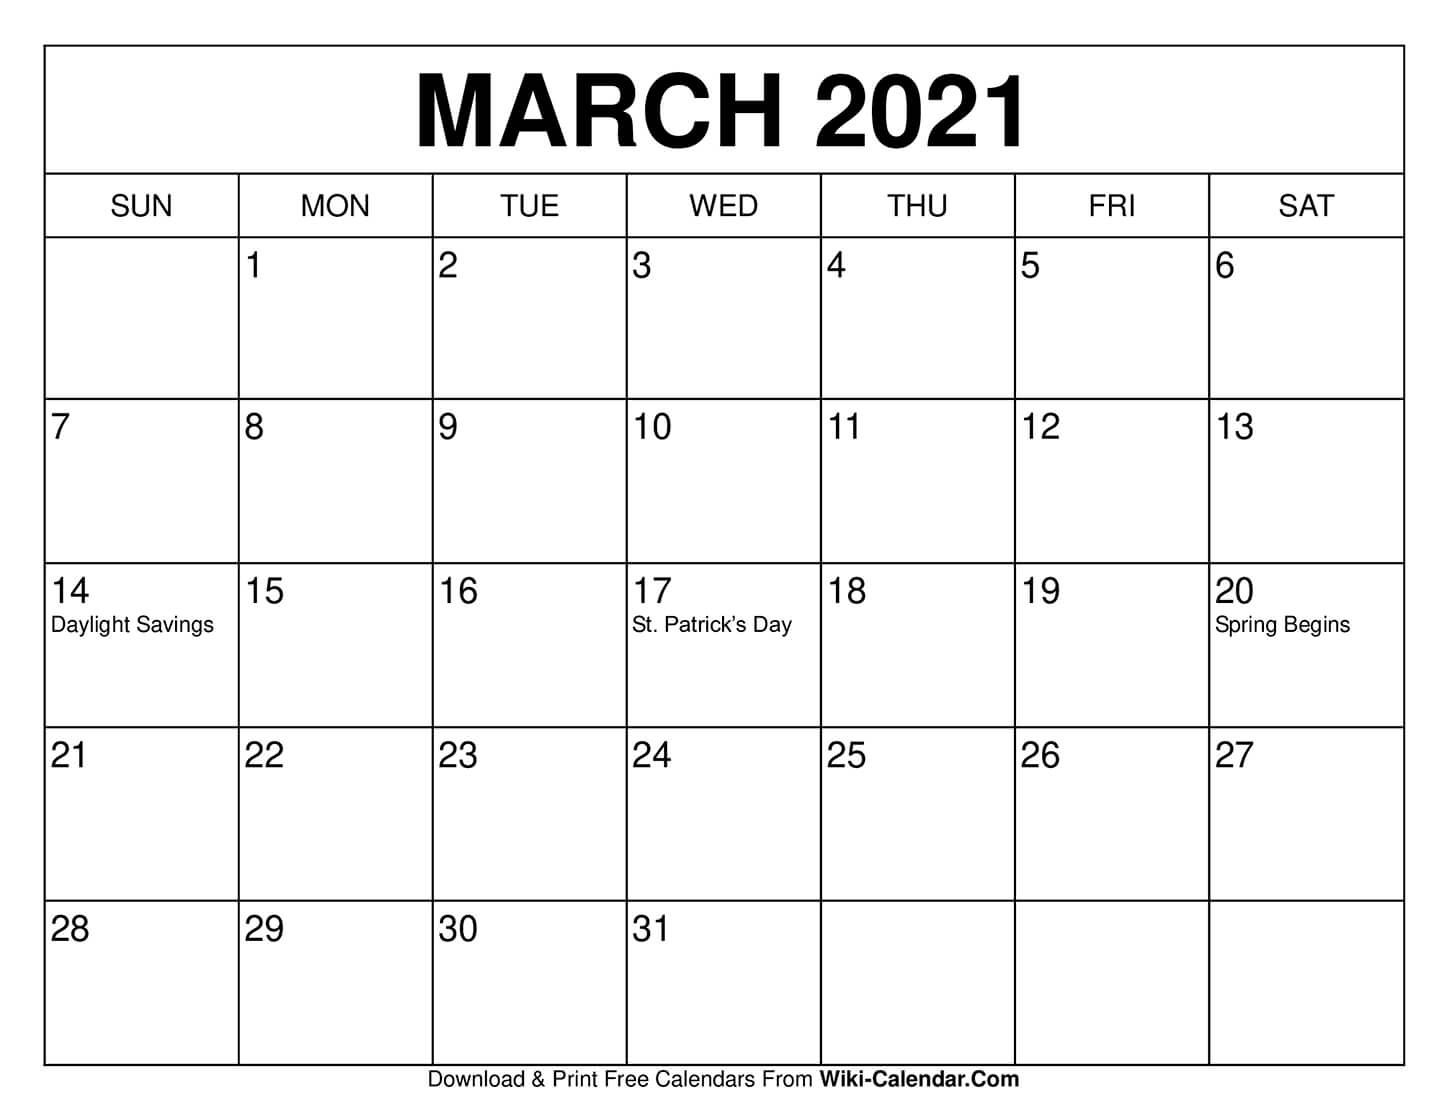 Free Printable March 2021 Calendar Templates. These Free